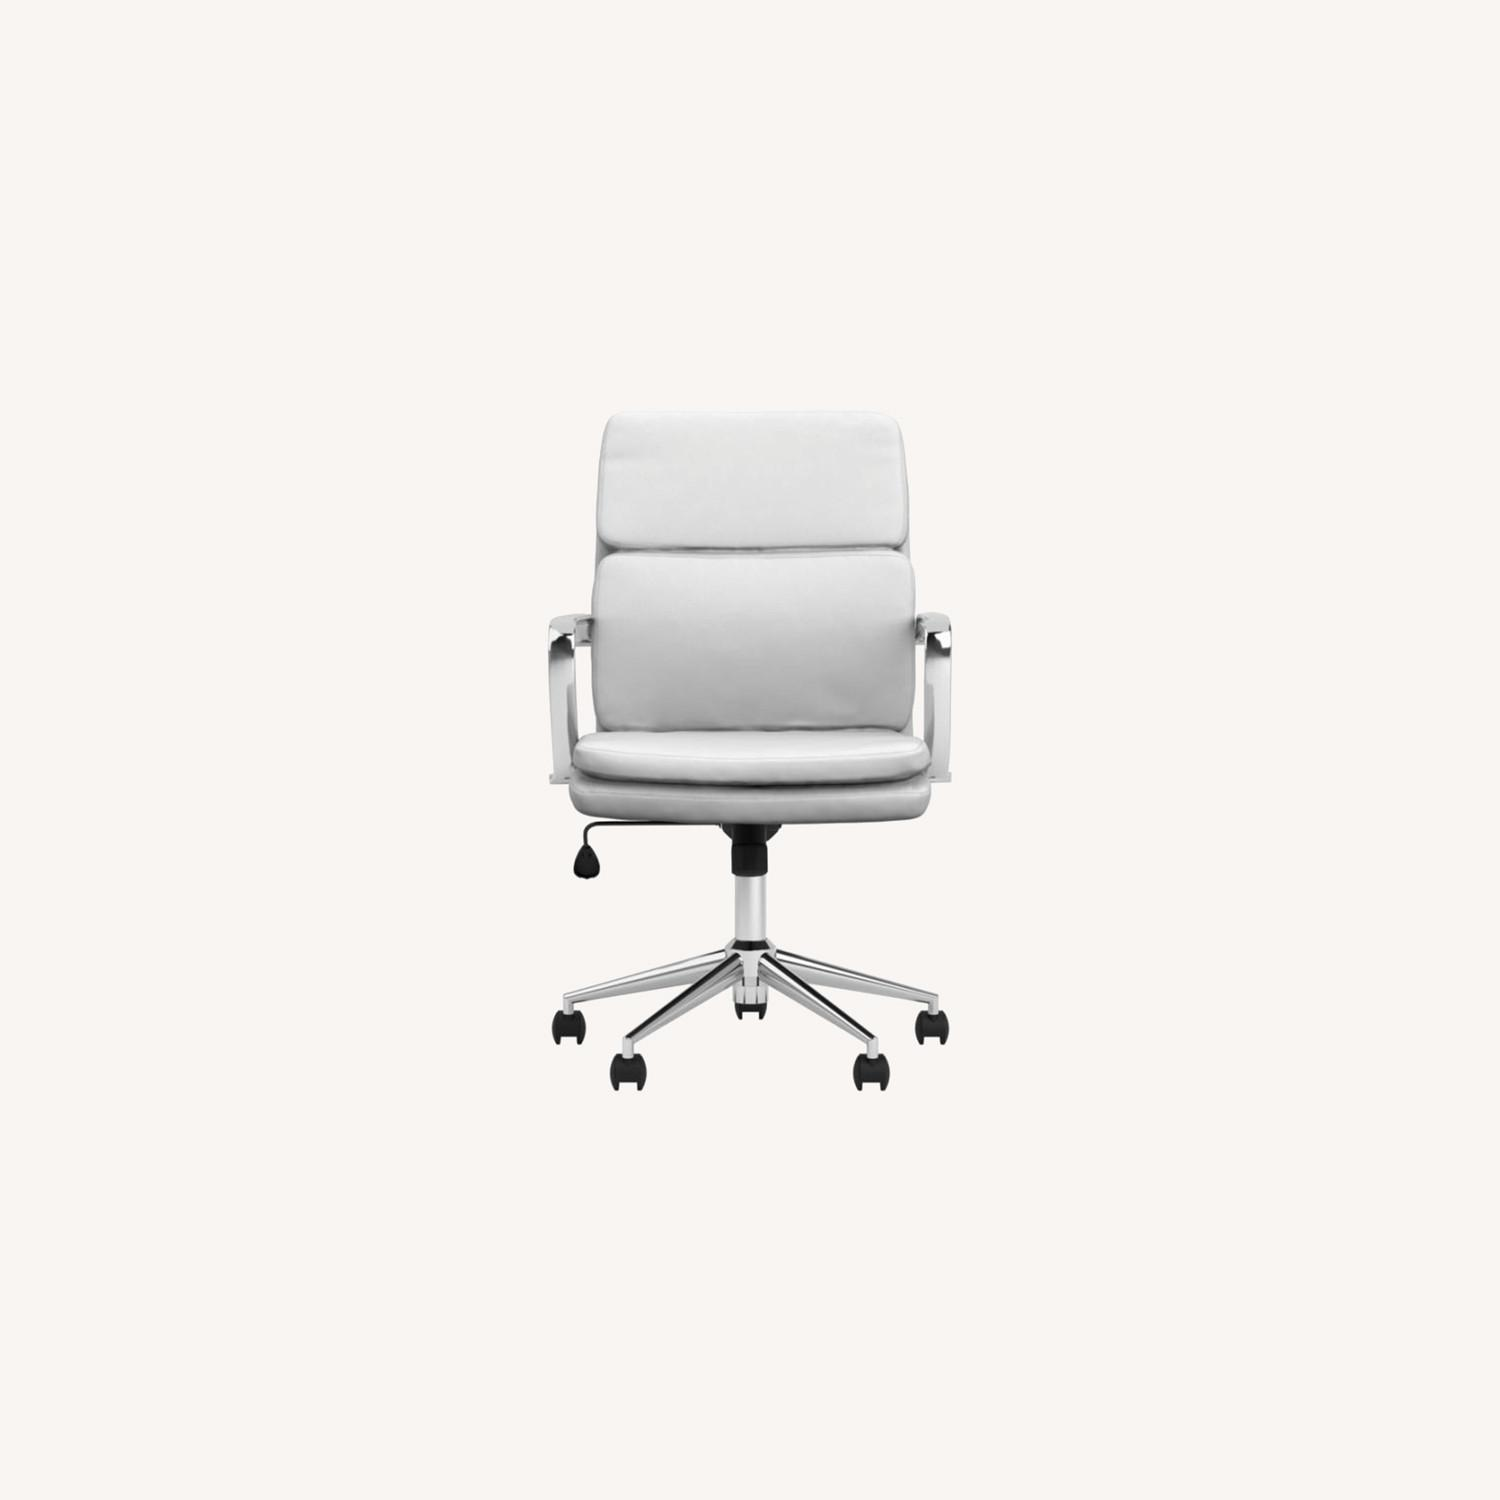 Office Chair In White Leatherette & Chrome Finish - image-9